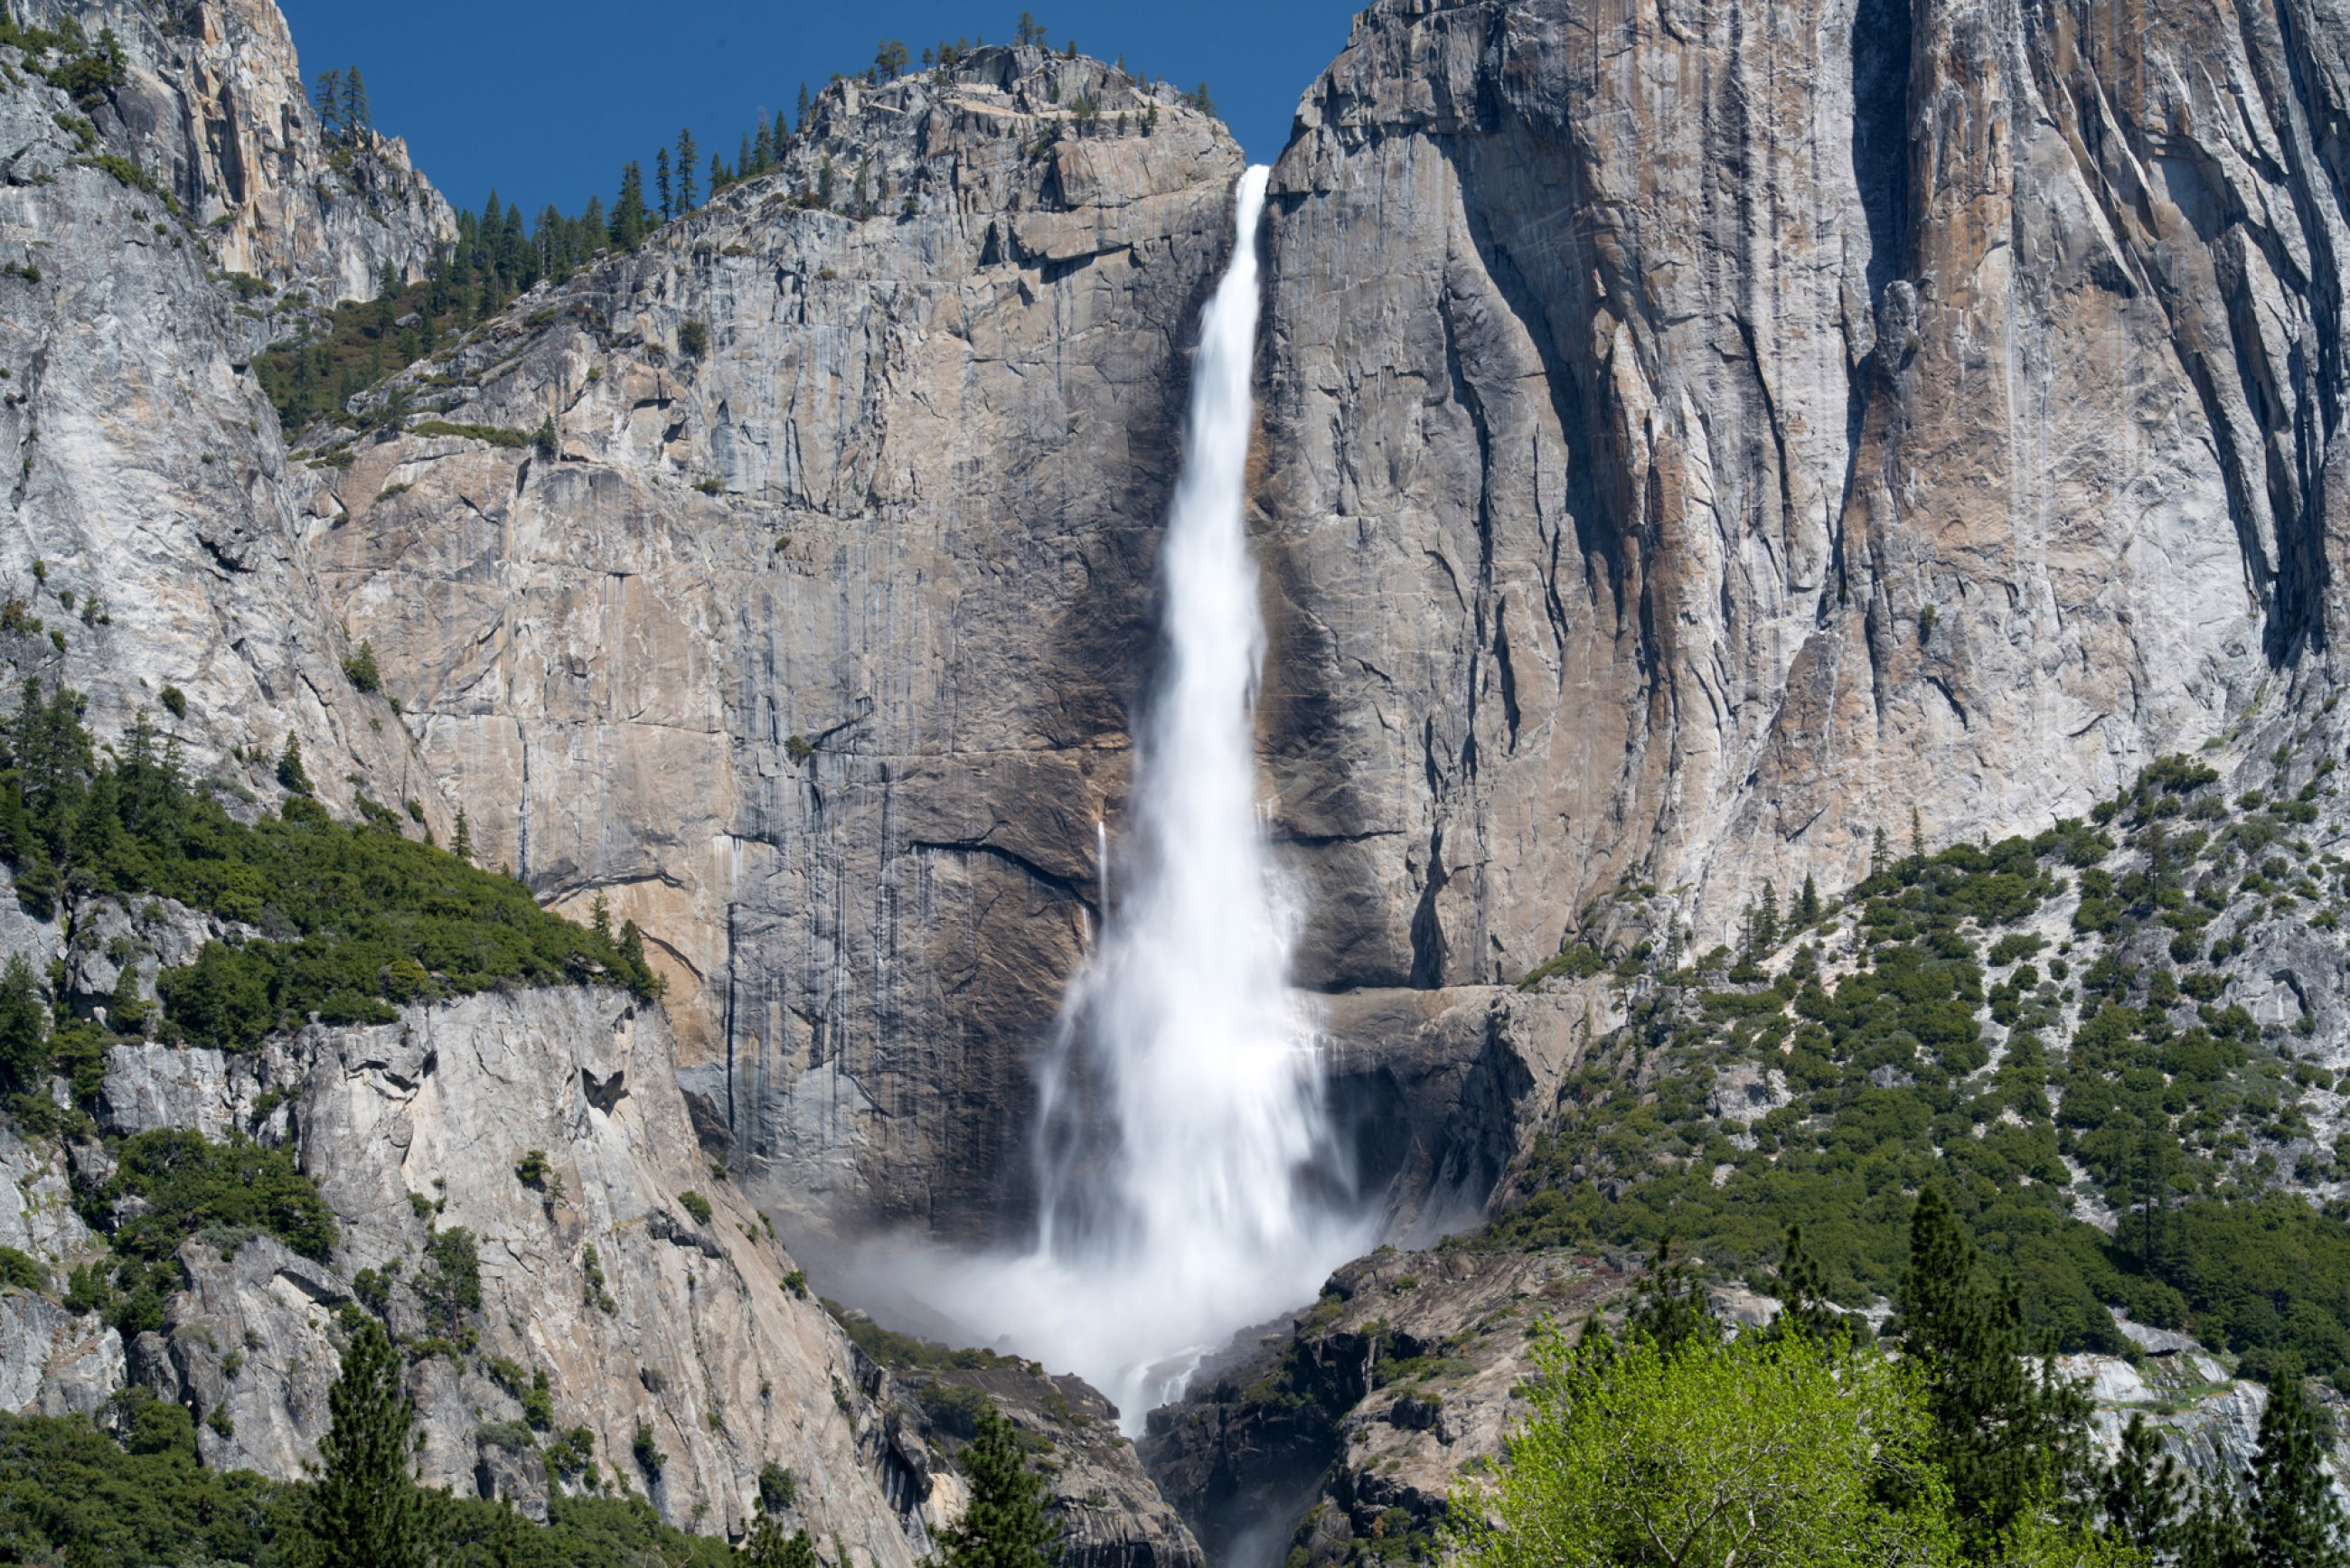 https://bubo.sk/uploads/galleries/7370/yosemite-yosemity-falls.jpg